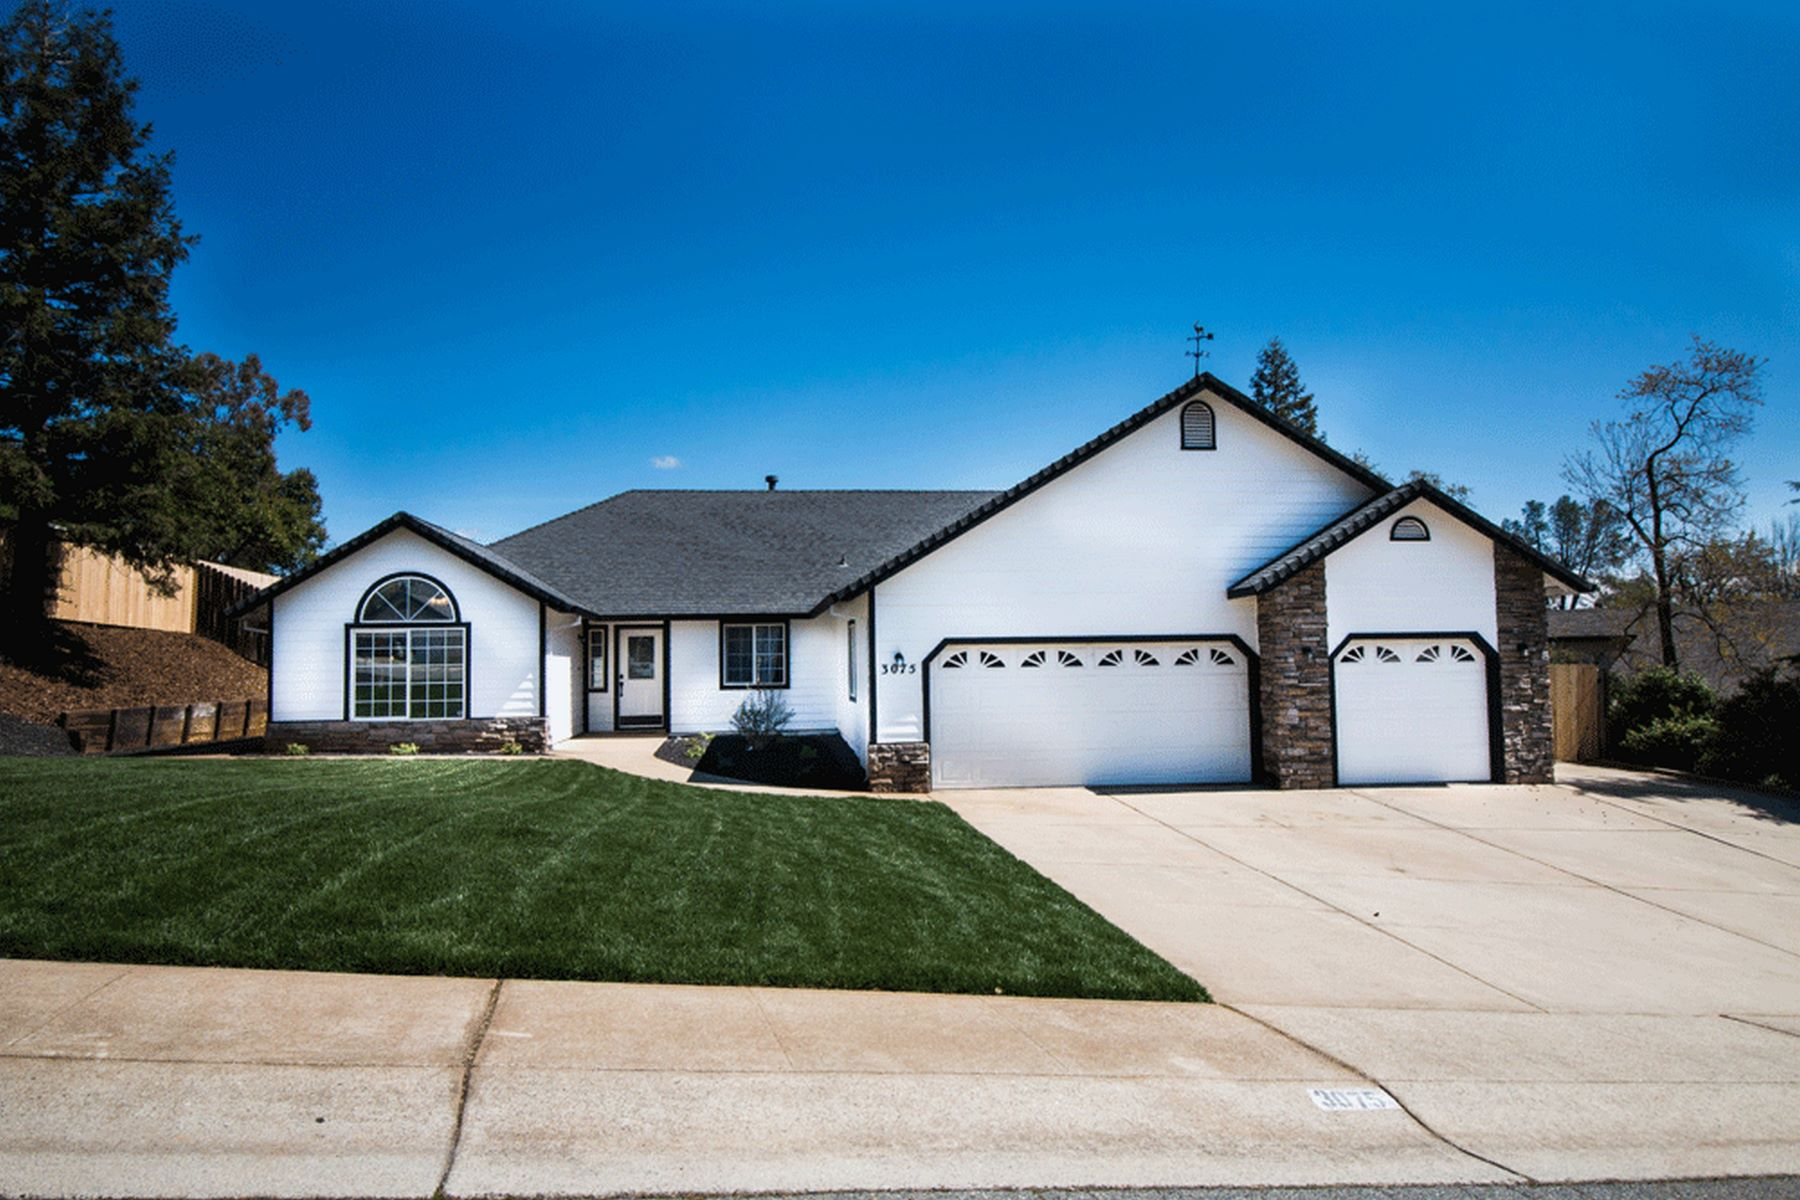 Single Family Homes for Active at Windsor Estates in Shasta Lake 3075 Butterfly Ln Shasta Lake, California 96019 United States